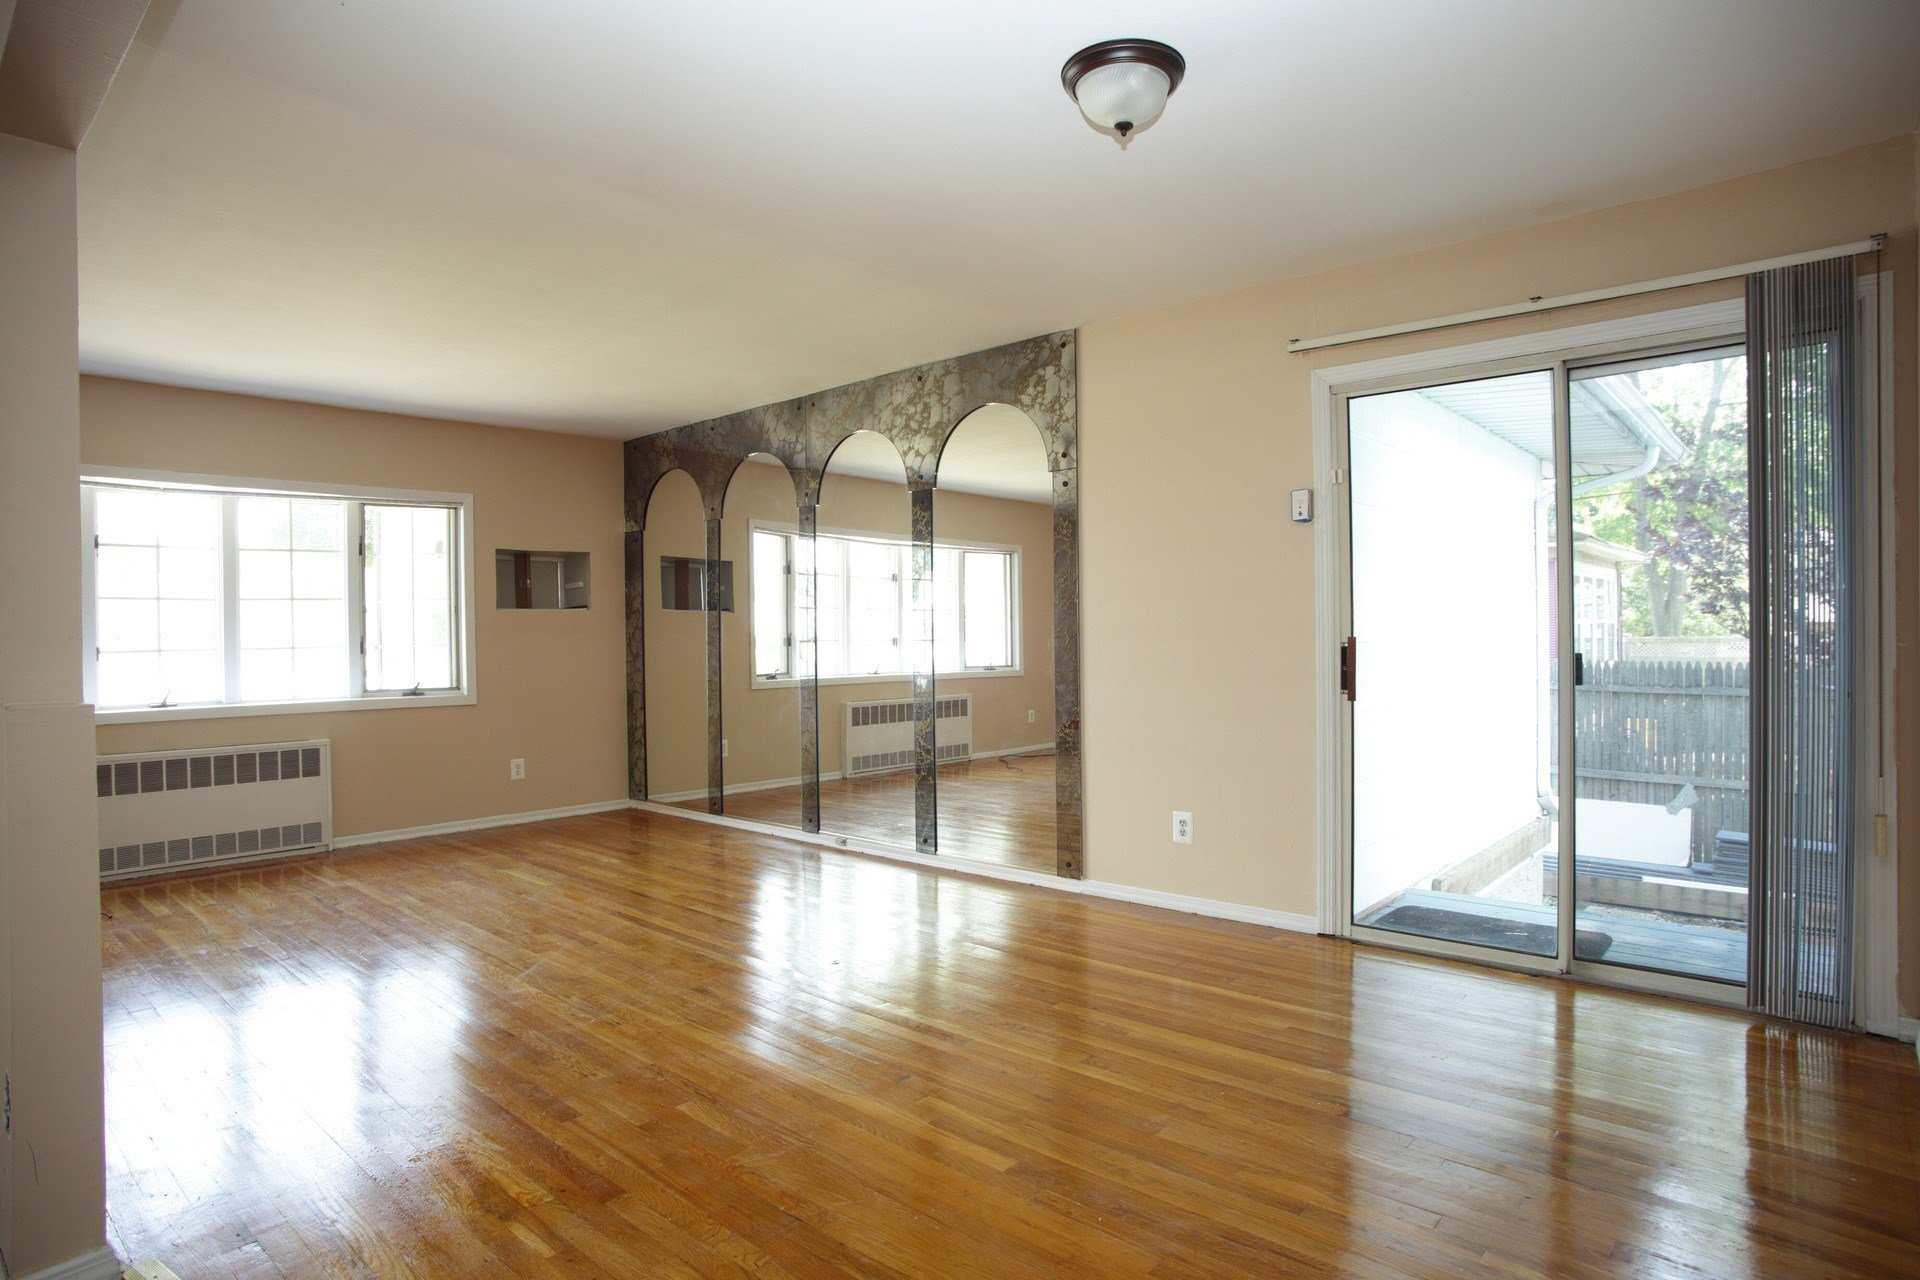 Best Rooms For Rent In New York – Apartments Flats Commercial With Pictures